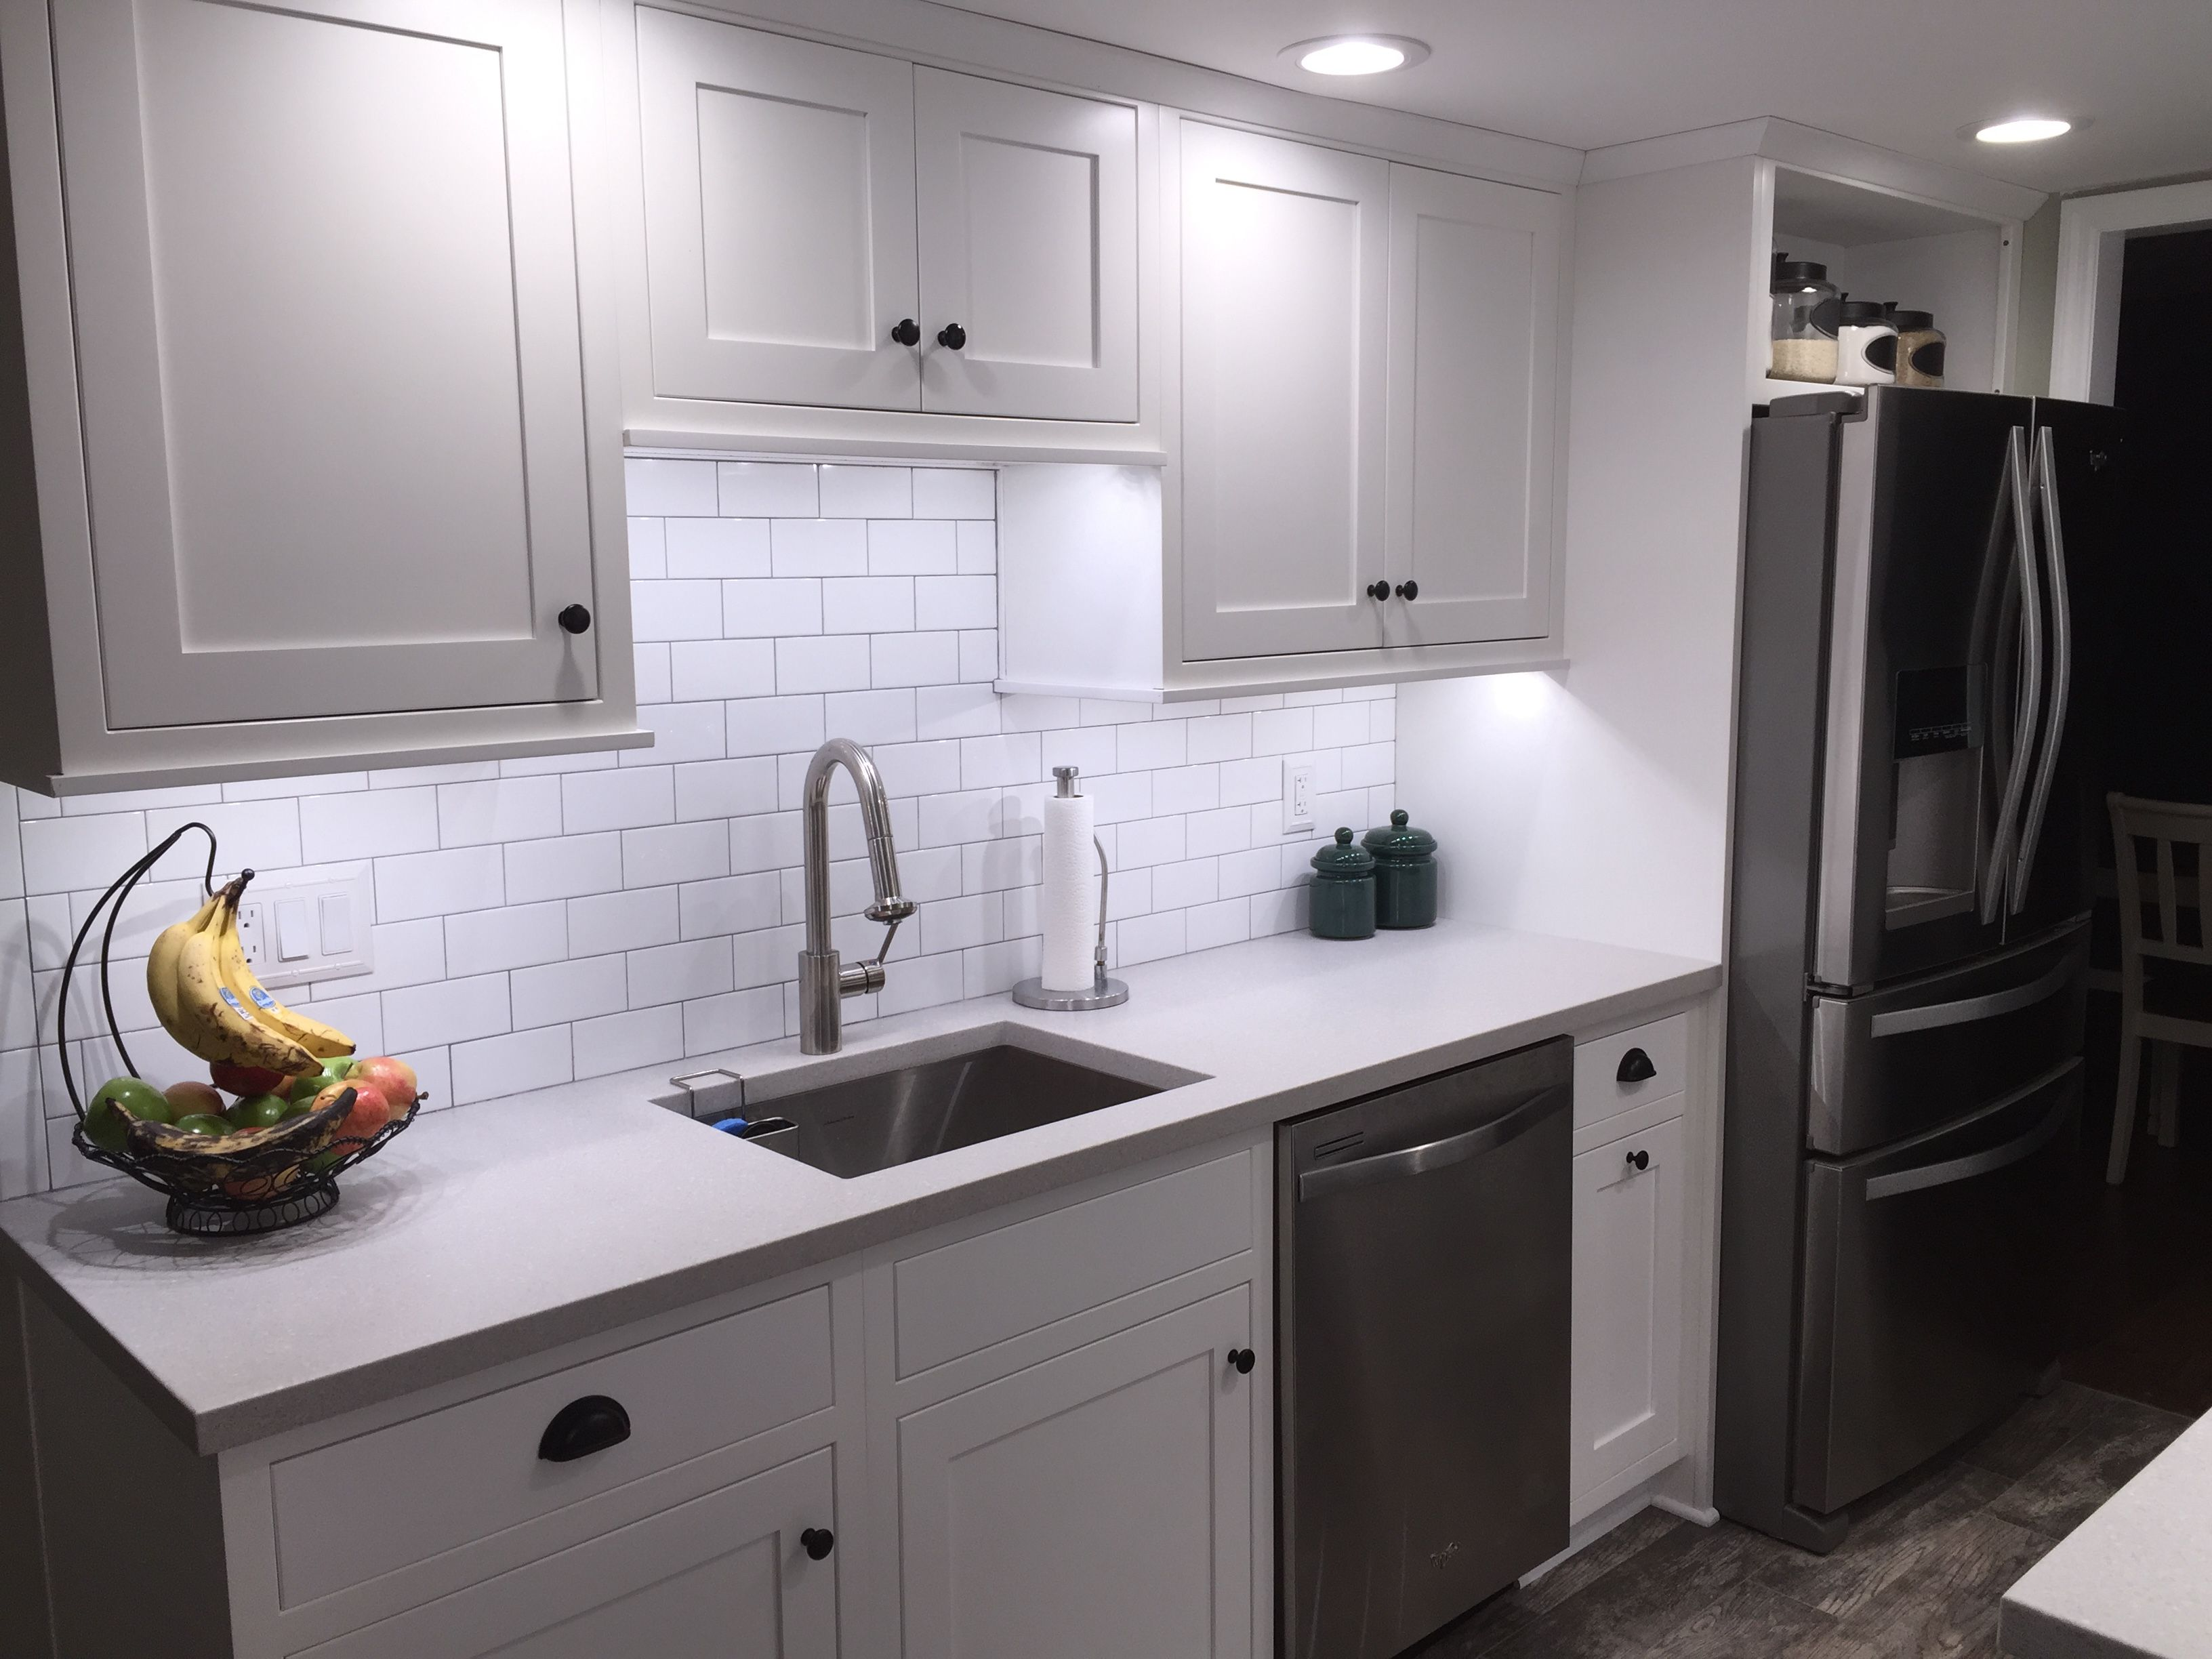 Galley Kitchen With White Shaker Cabinets Subway Tiles Faux Wood